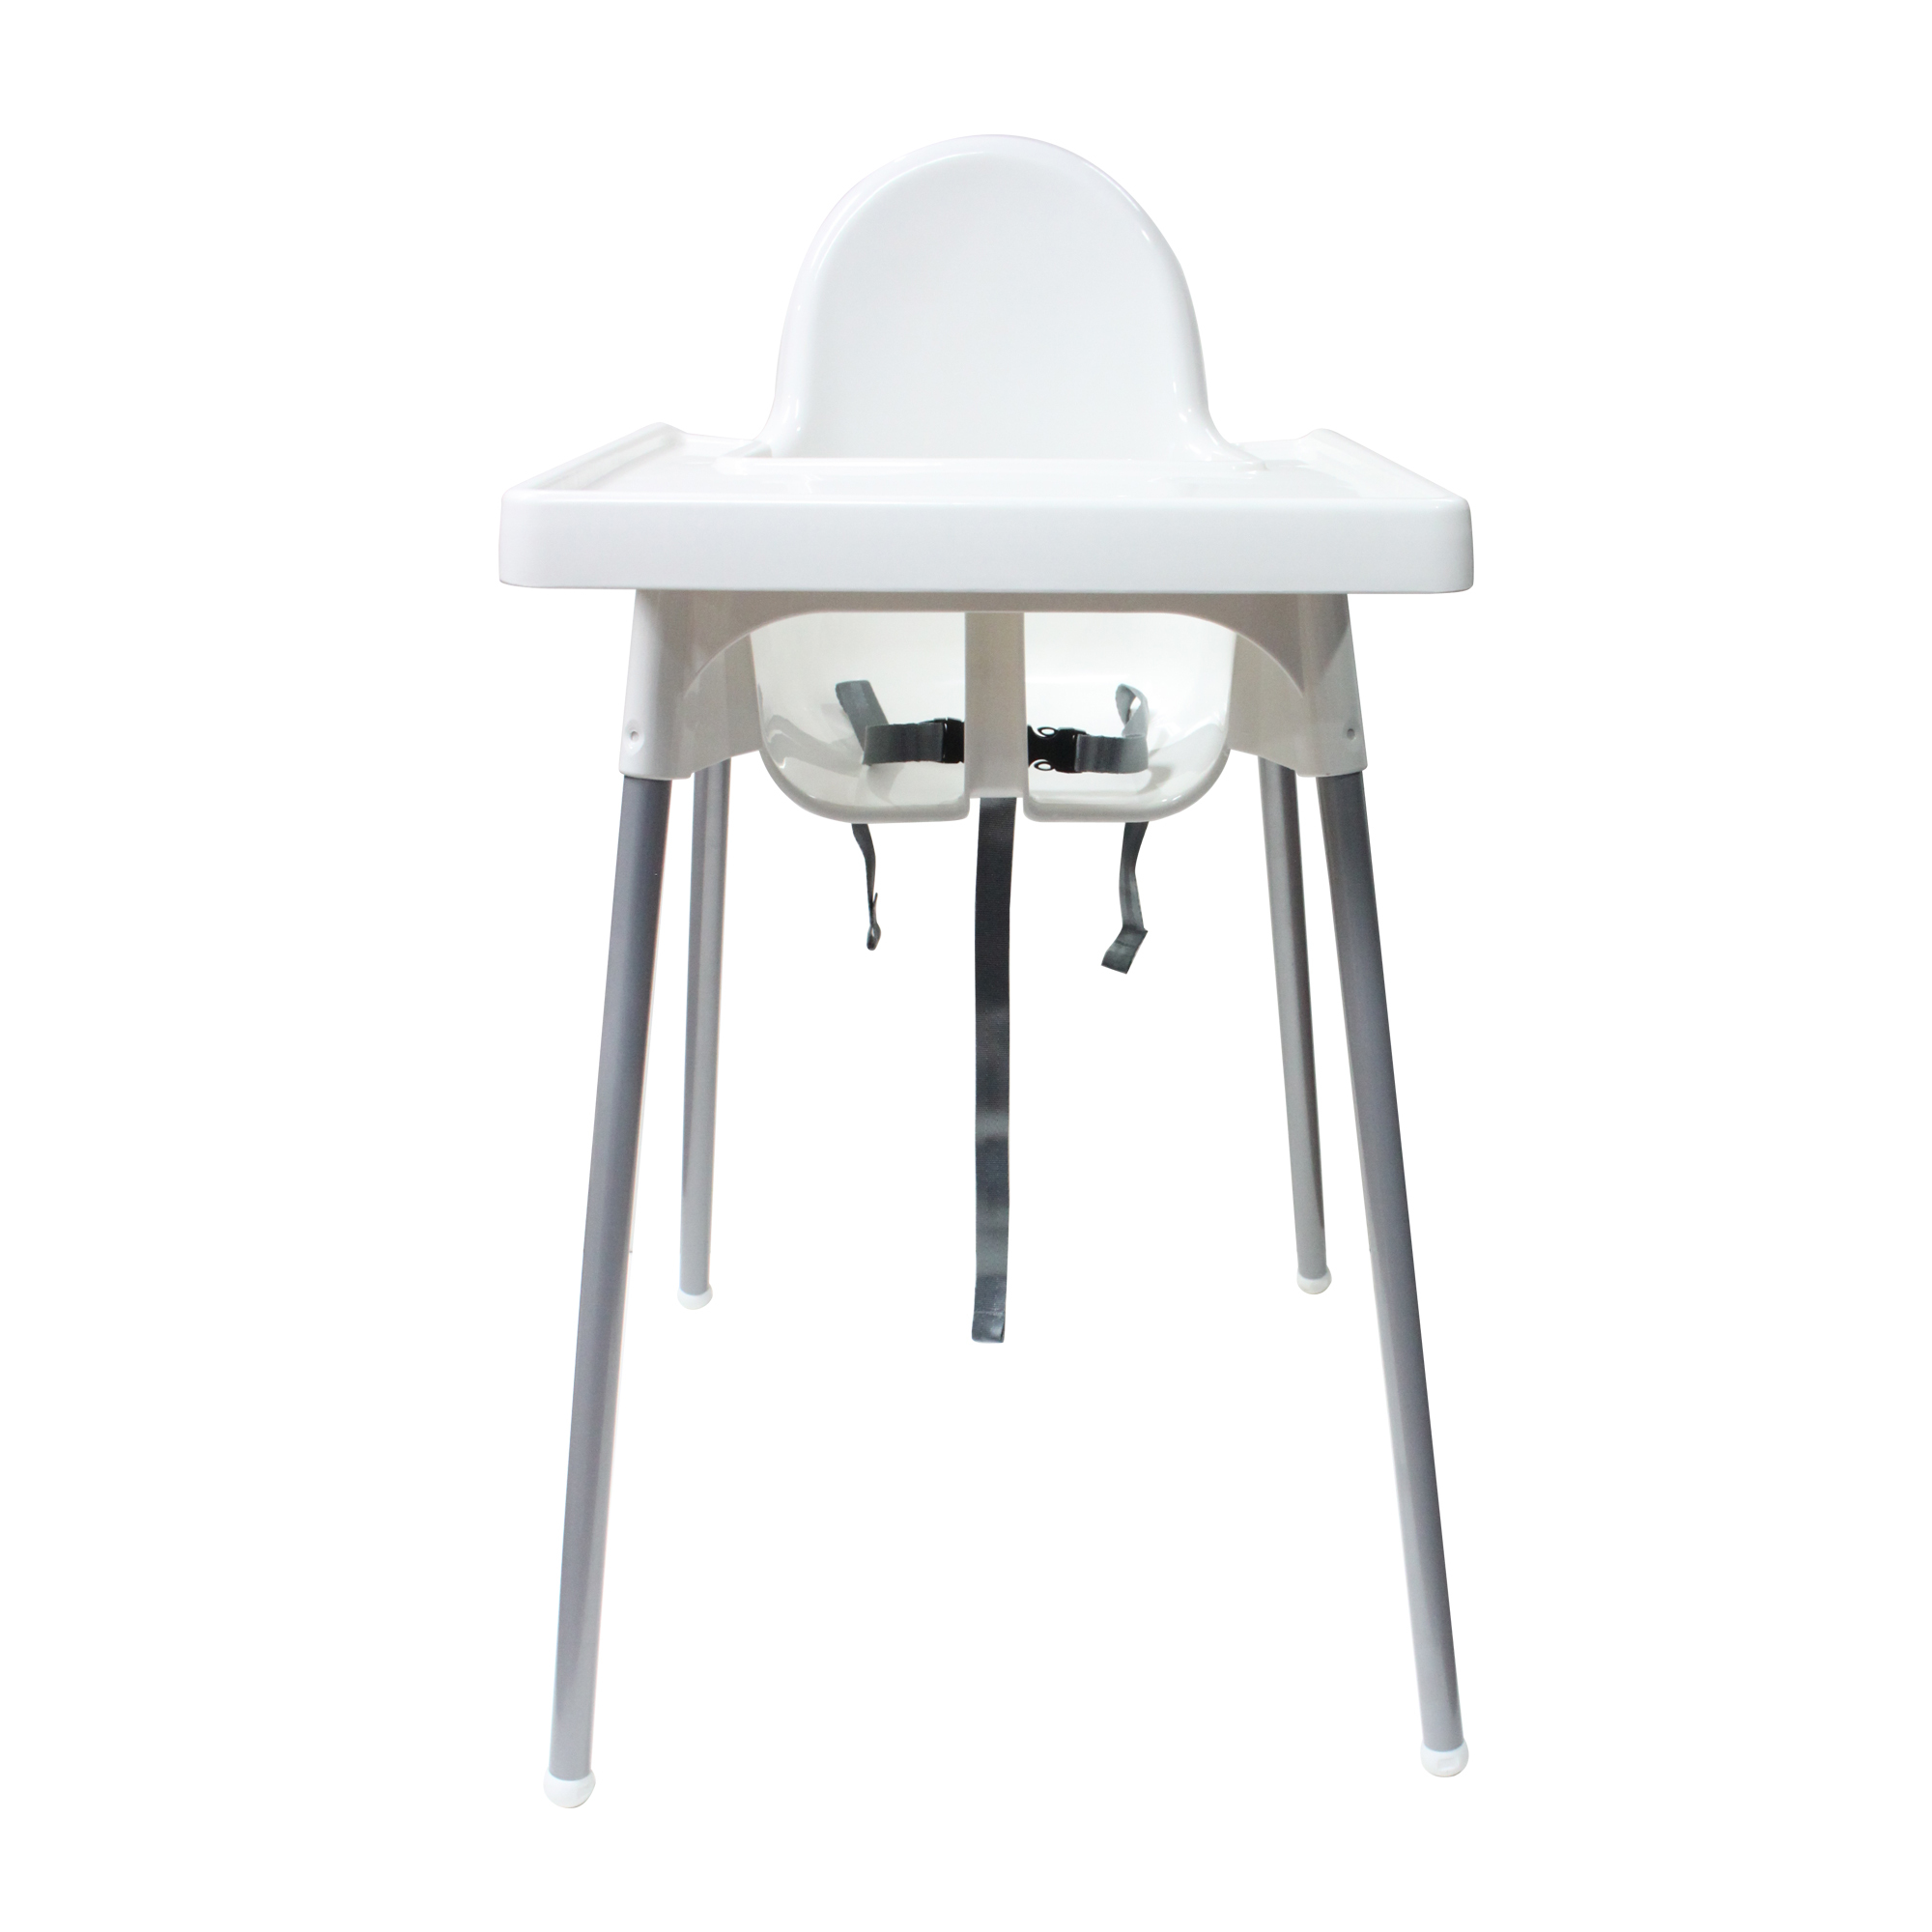 Children's High Chair with Tray